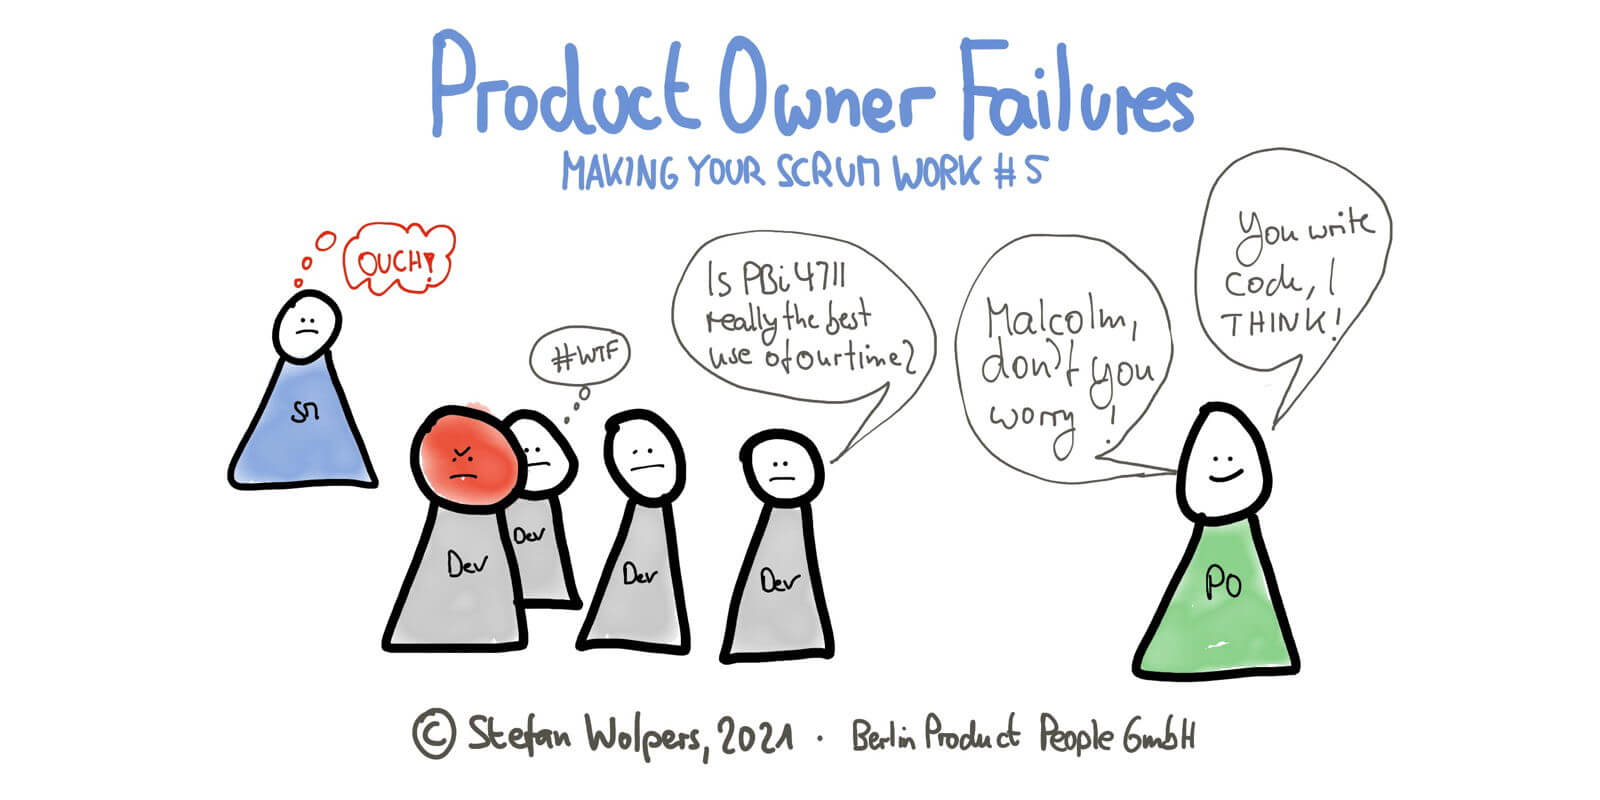 Three Wide-Spread Product Owner Failures in 6:09 Minutes—Making Your Scrum Work #5 — Age-of-Product.com